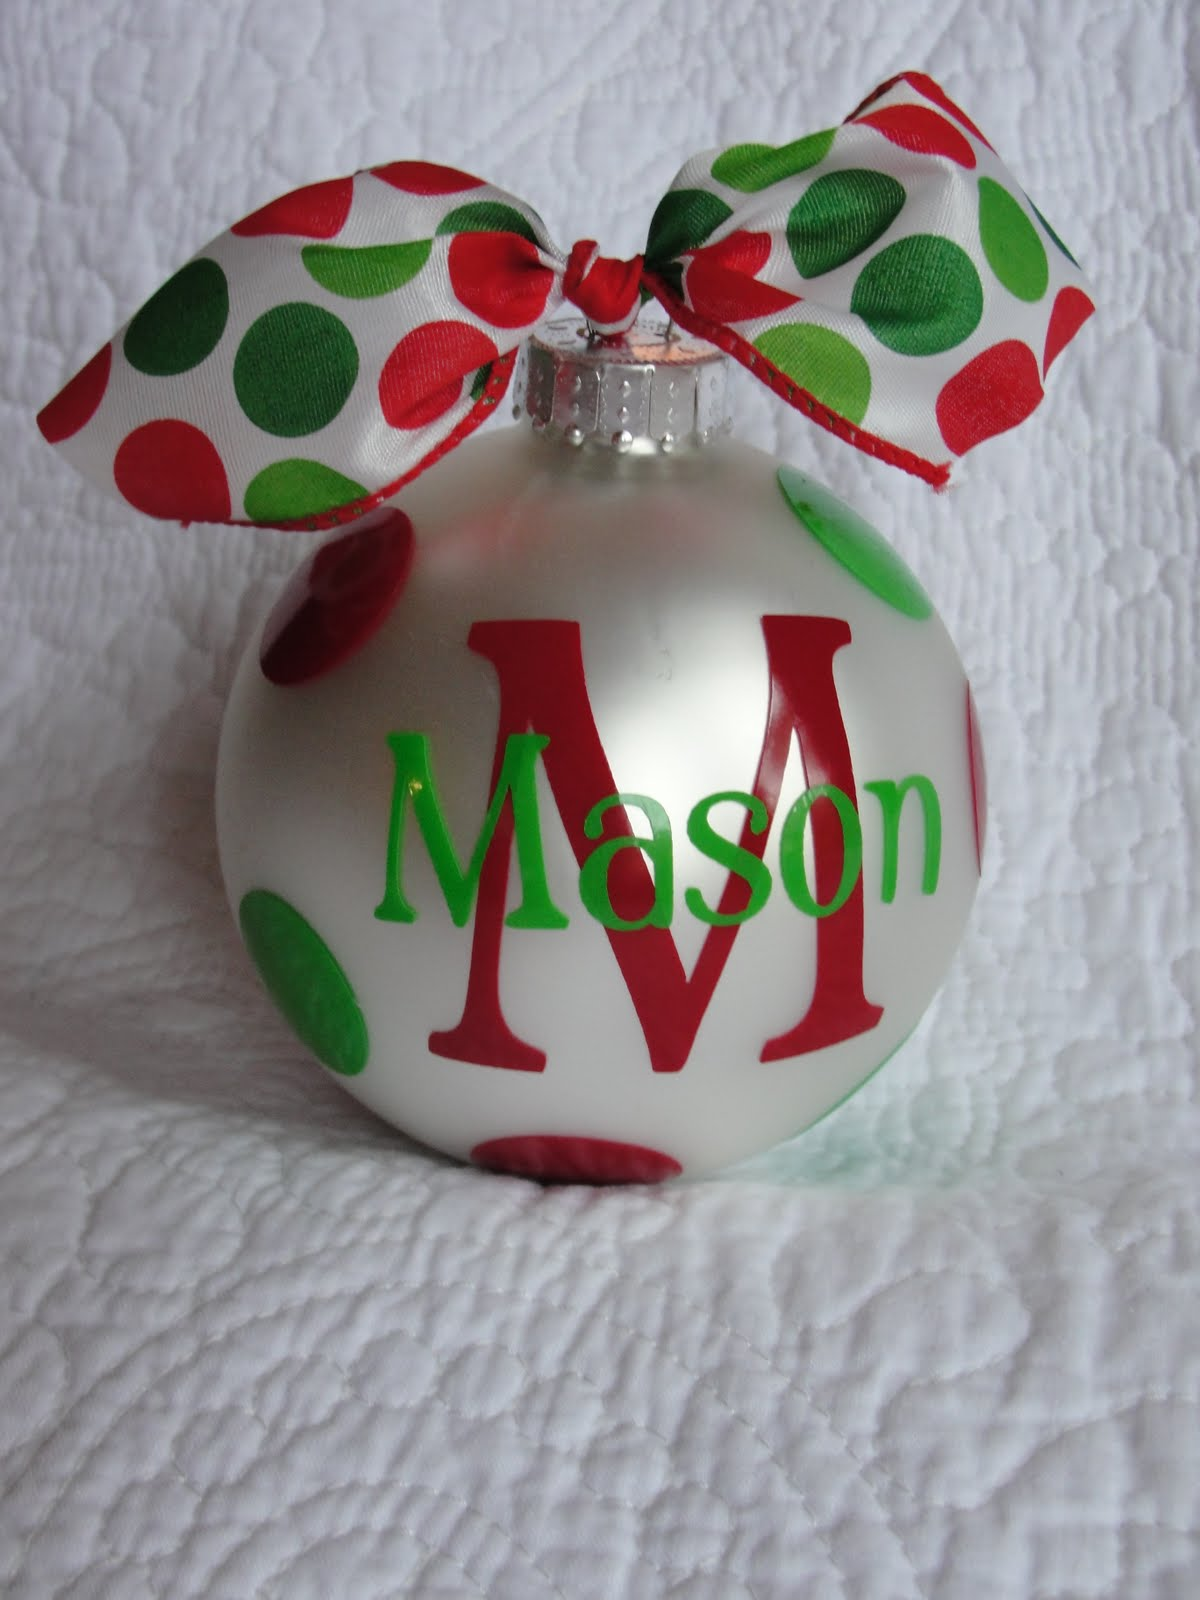 Rantin 39 ravin 39 homemade ornaments for Personalized christmas photo ornaments